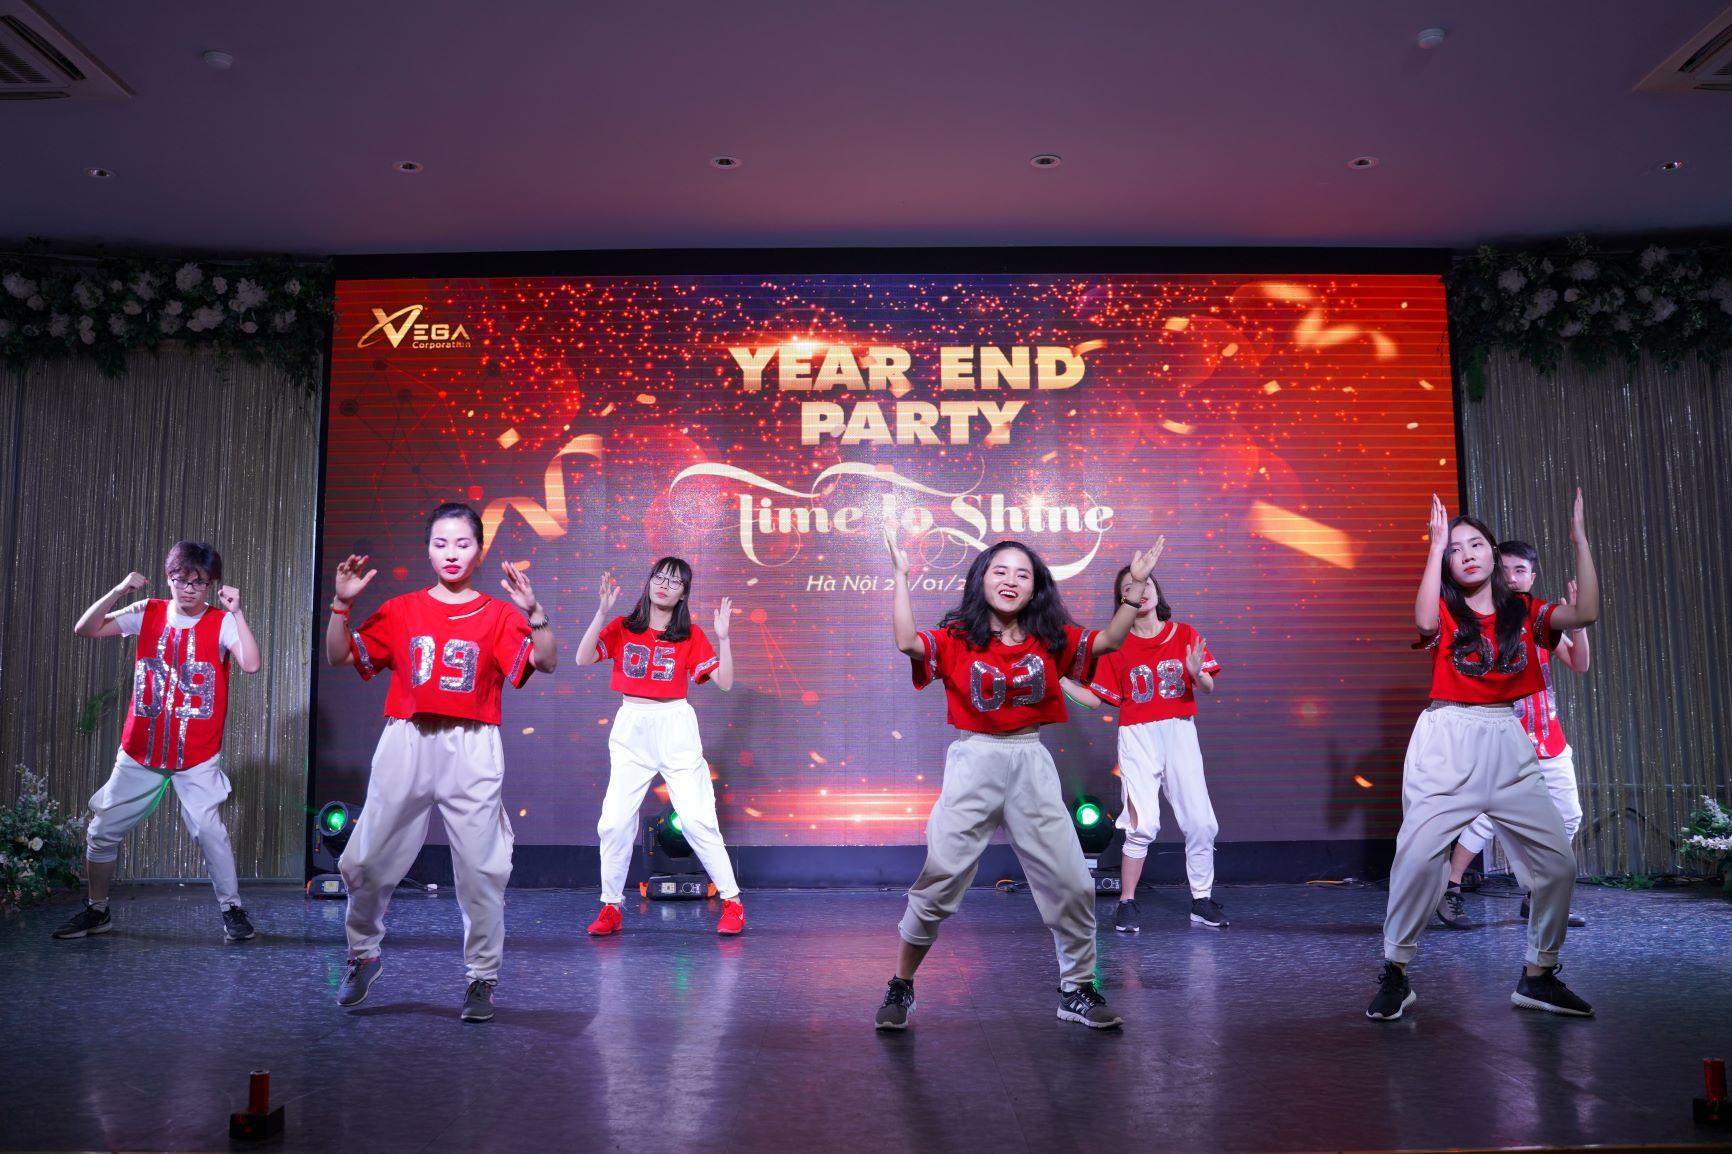 [Vega Hà Nội] Year End Party 2018 - Time To Shine 29.01.2019